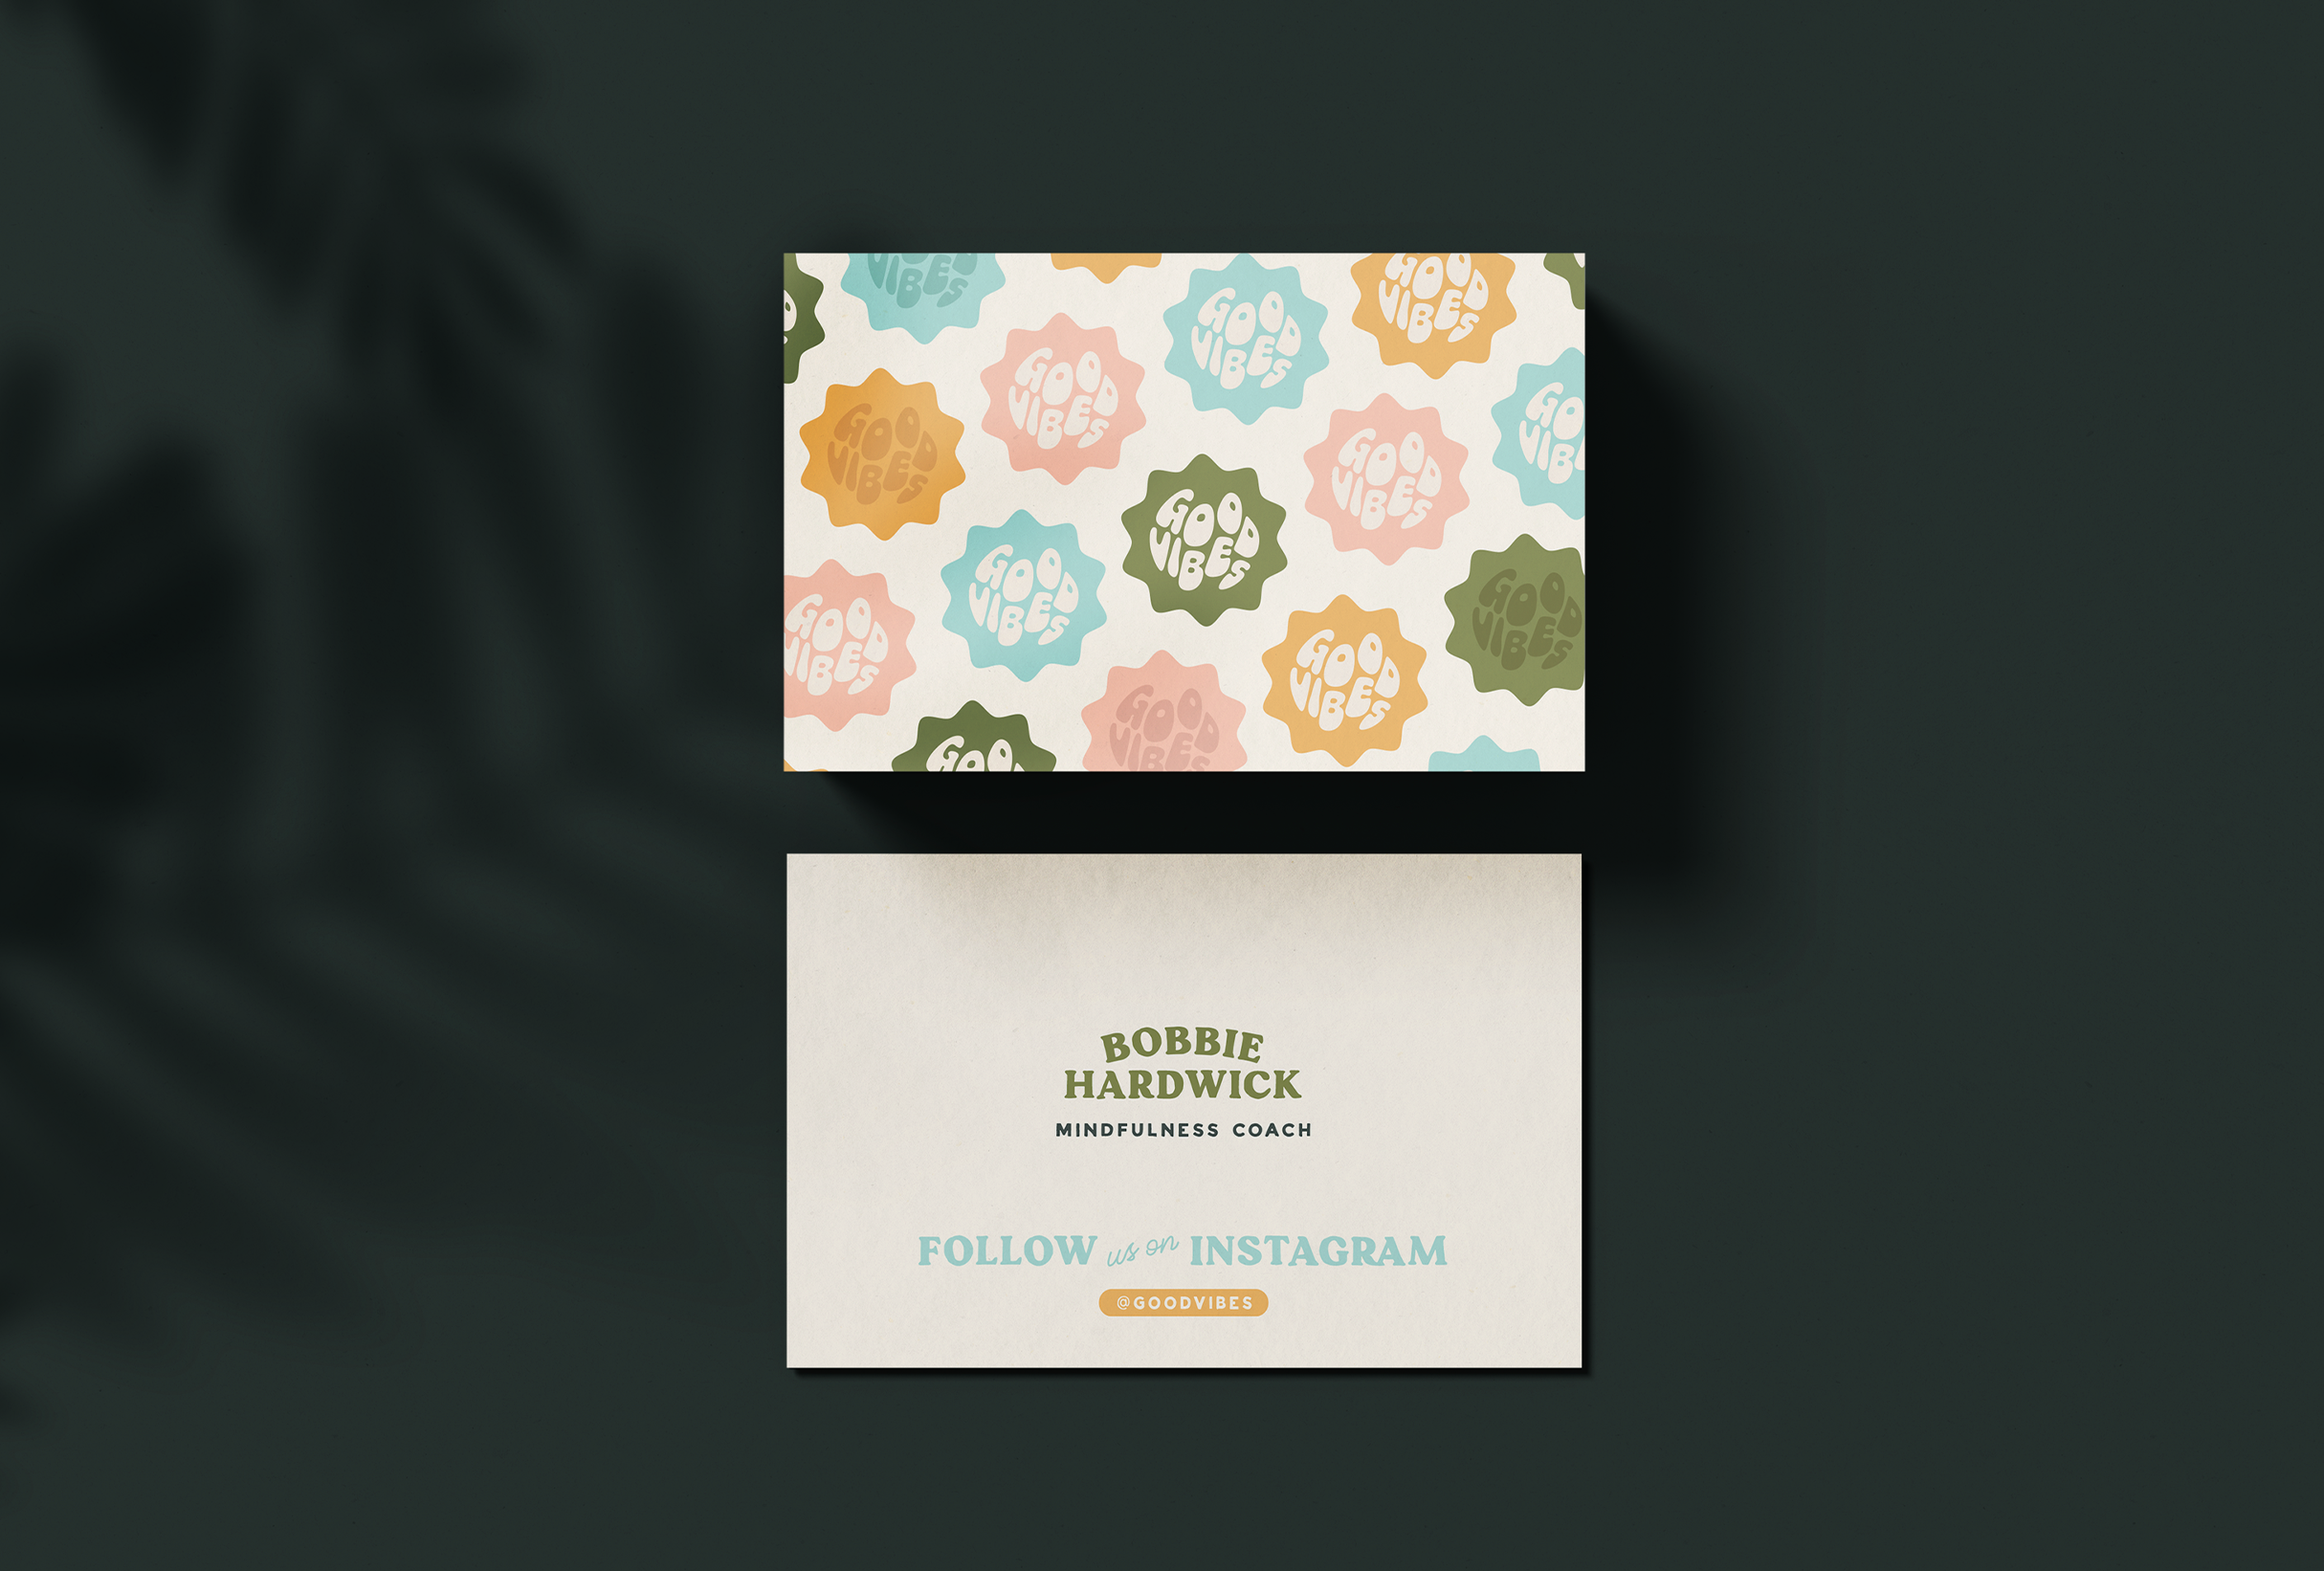 Business card design for Bobbie at Good Vibes, a mindfulness & coaching business for women within the creative & tech industries - designed by Wiltshire-based graphic designer, Kaye Huett